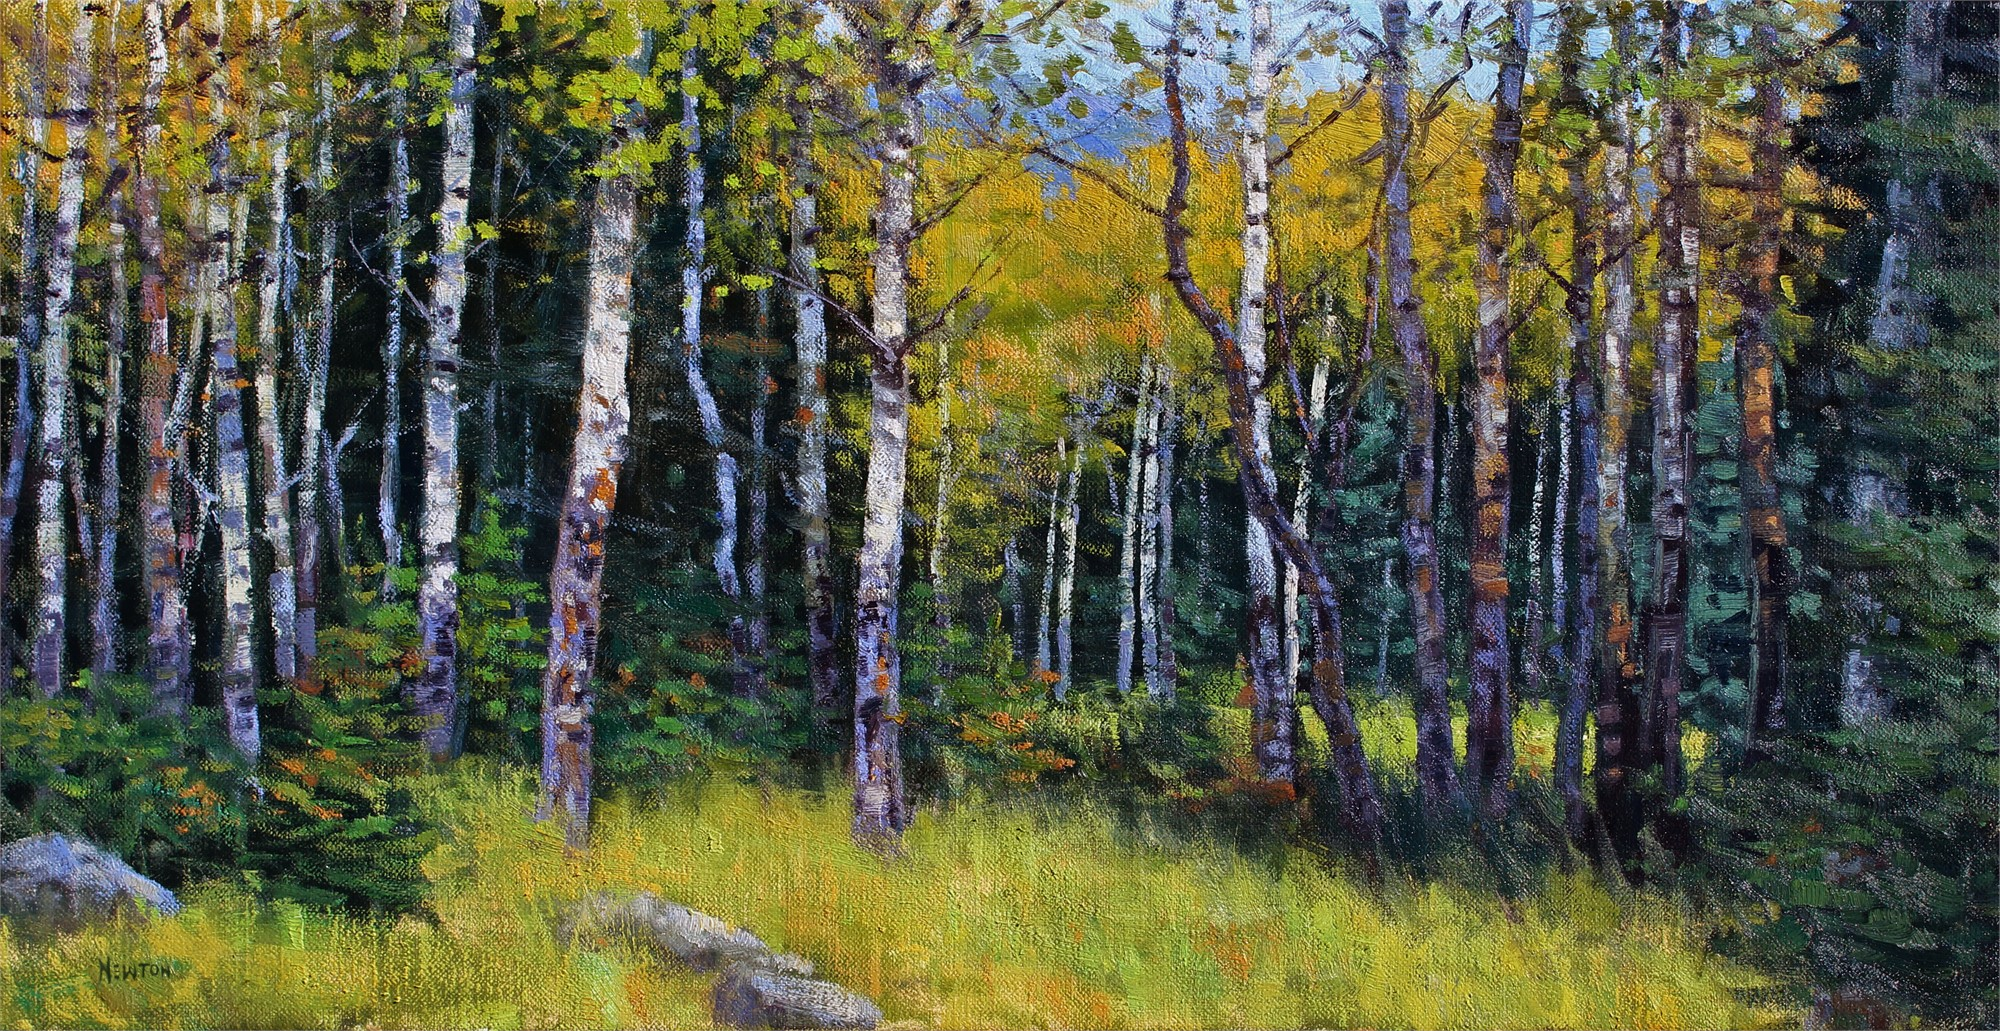 42 Aspens by Wes Newton